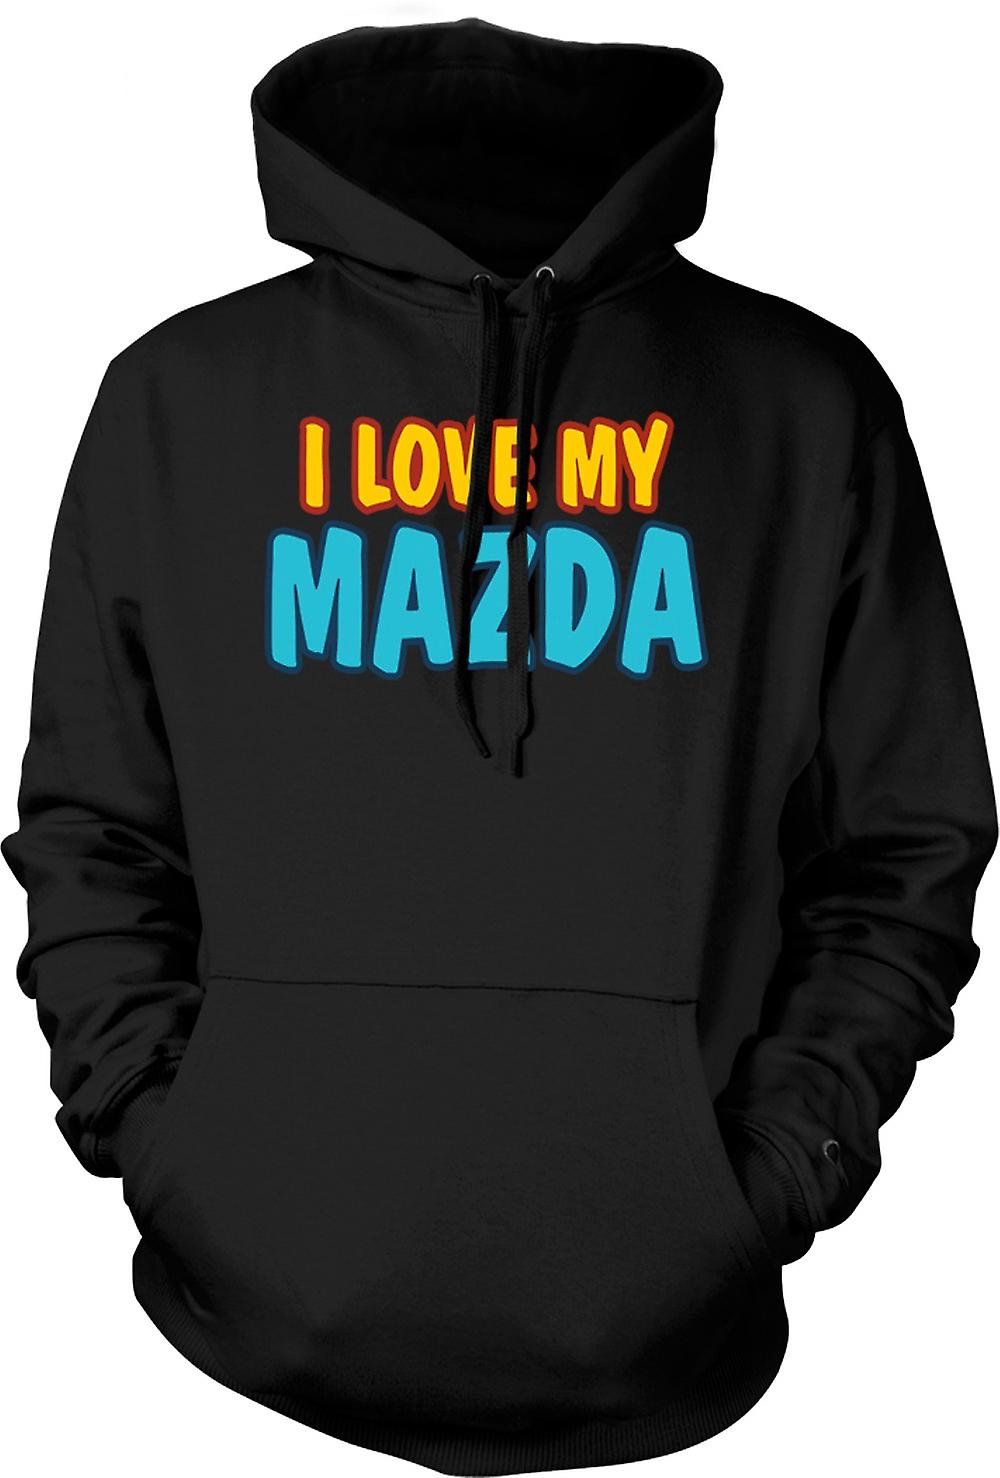 Kids Hoodie -  I Love My Mazda - Car Enthusiast